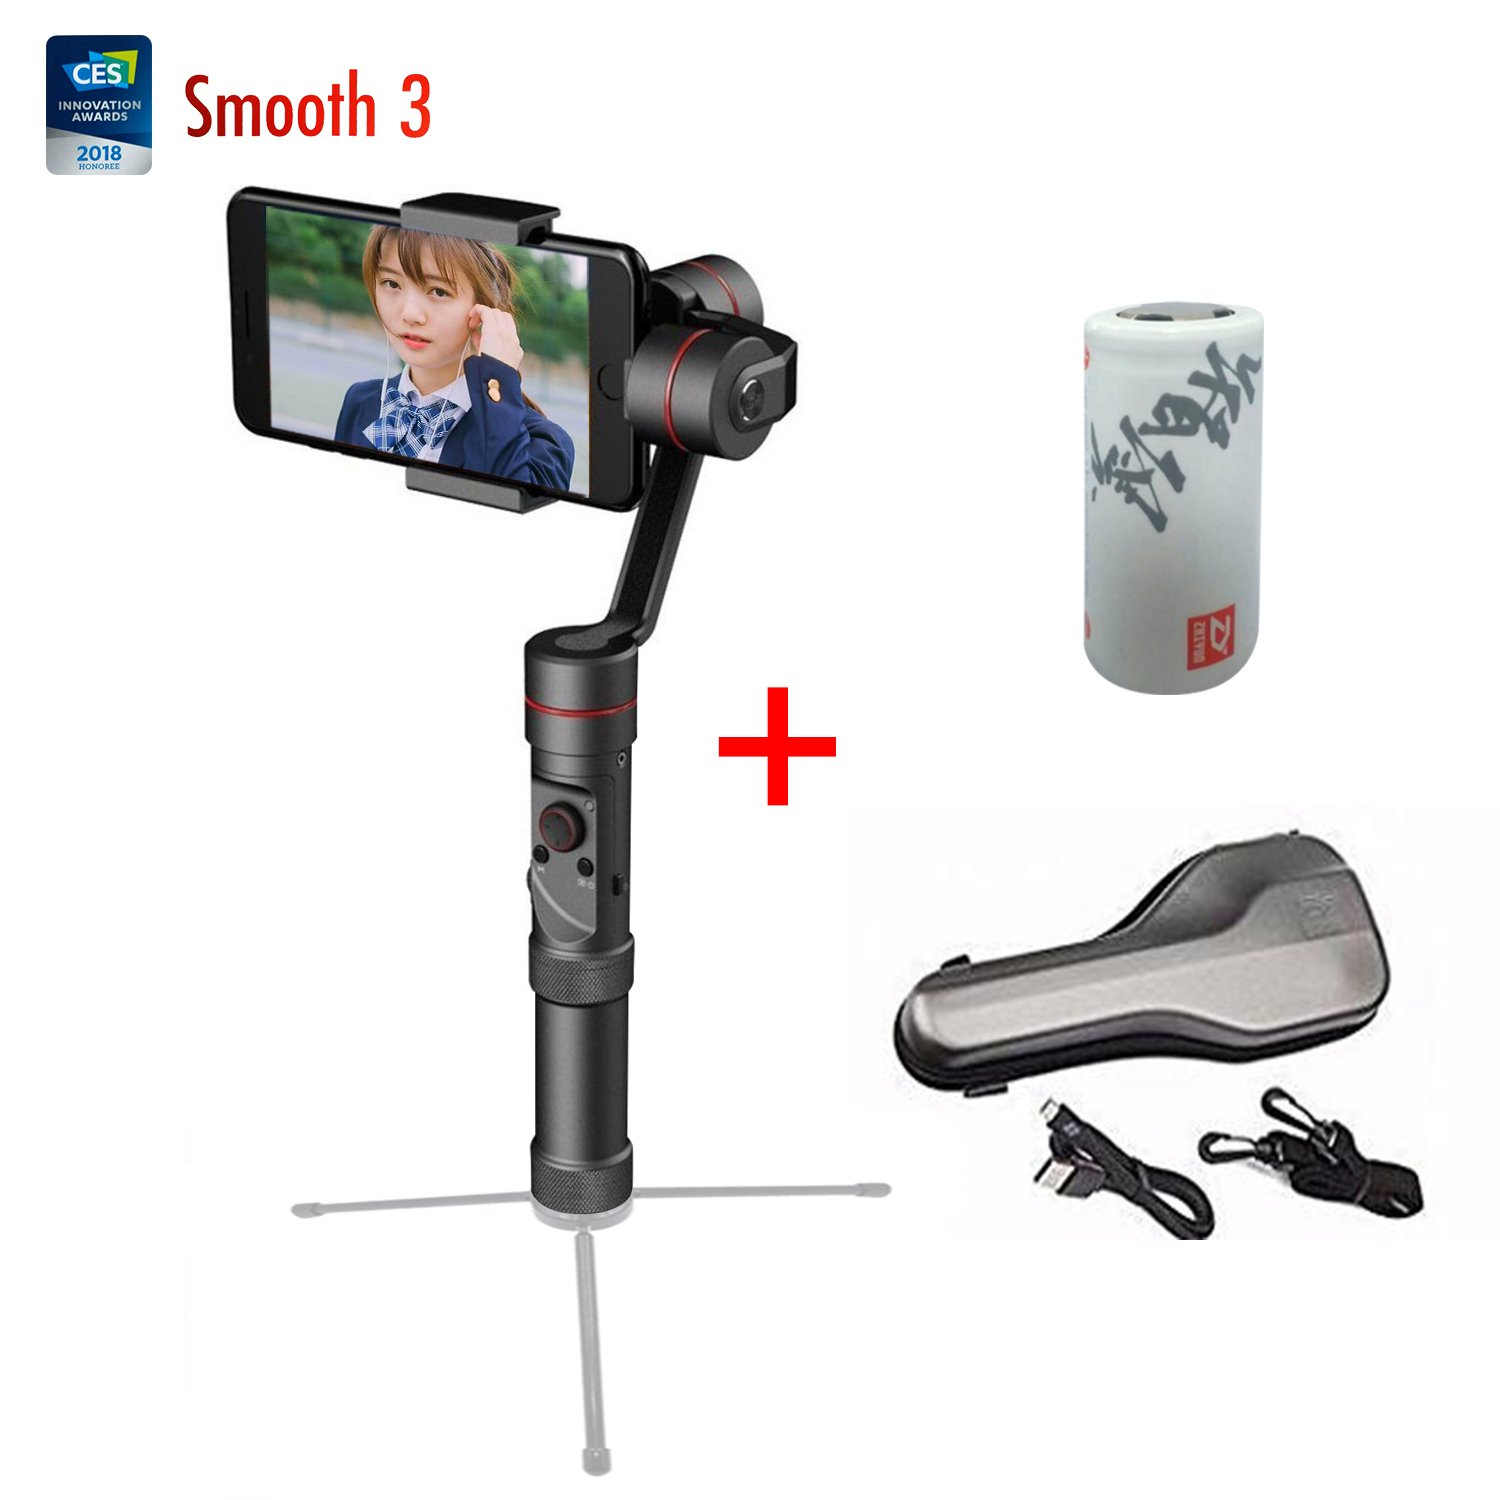 Zhiyun Smooth 3 Axis Joystick Handheld Smartphone Gimbal Stabilizer, Compatible with iPhoneX/8/7 / 6s Plus